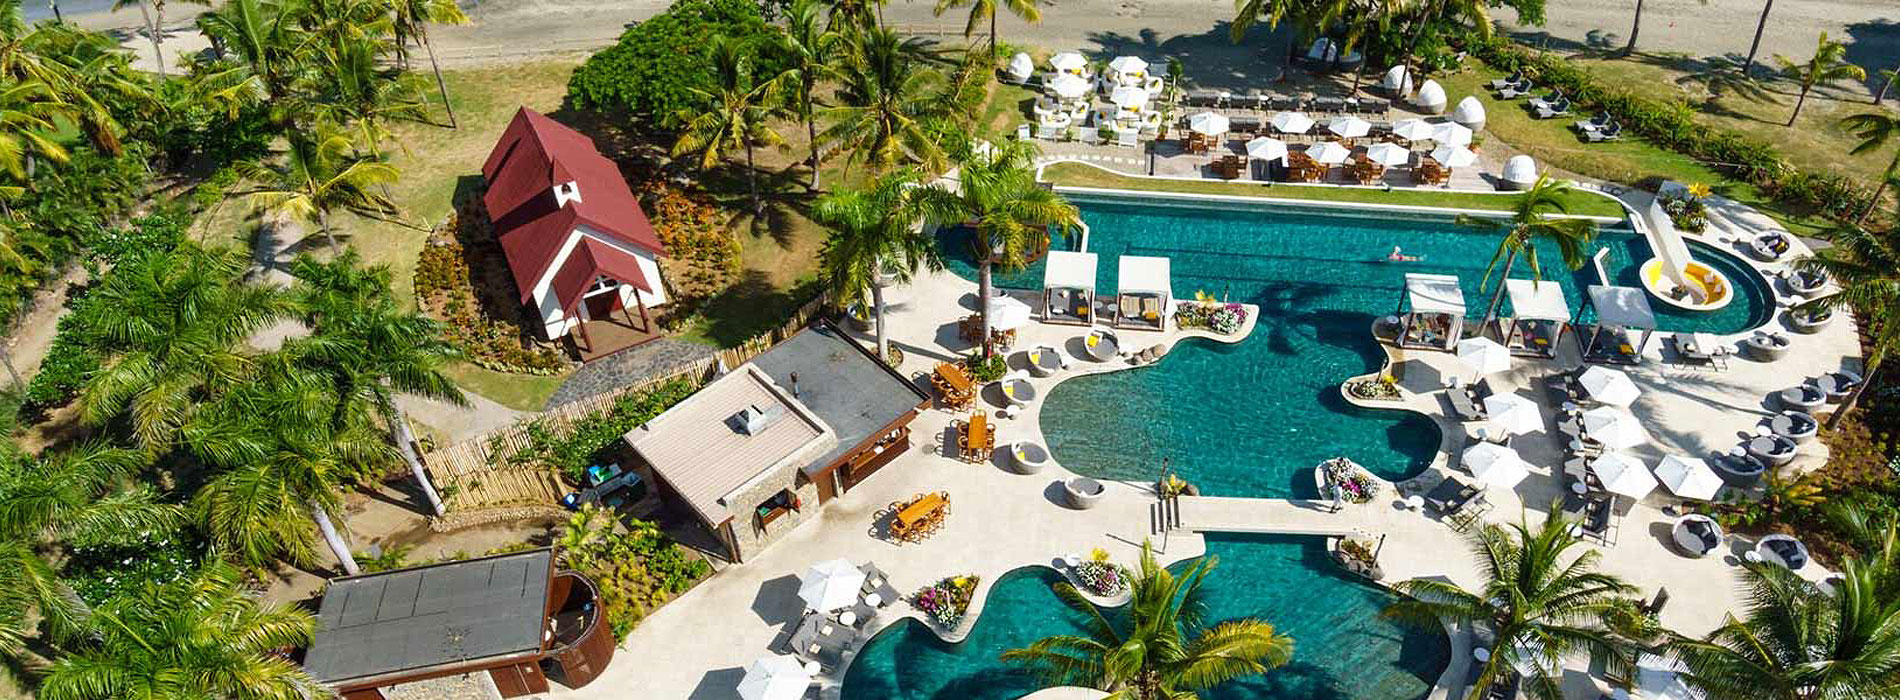 sofitel resort spa fiji